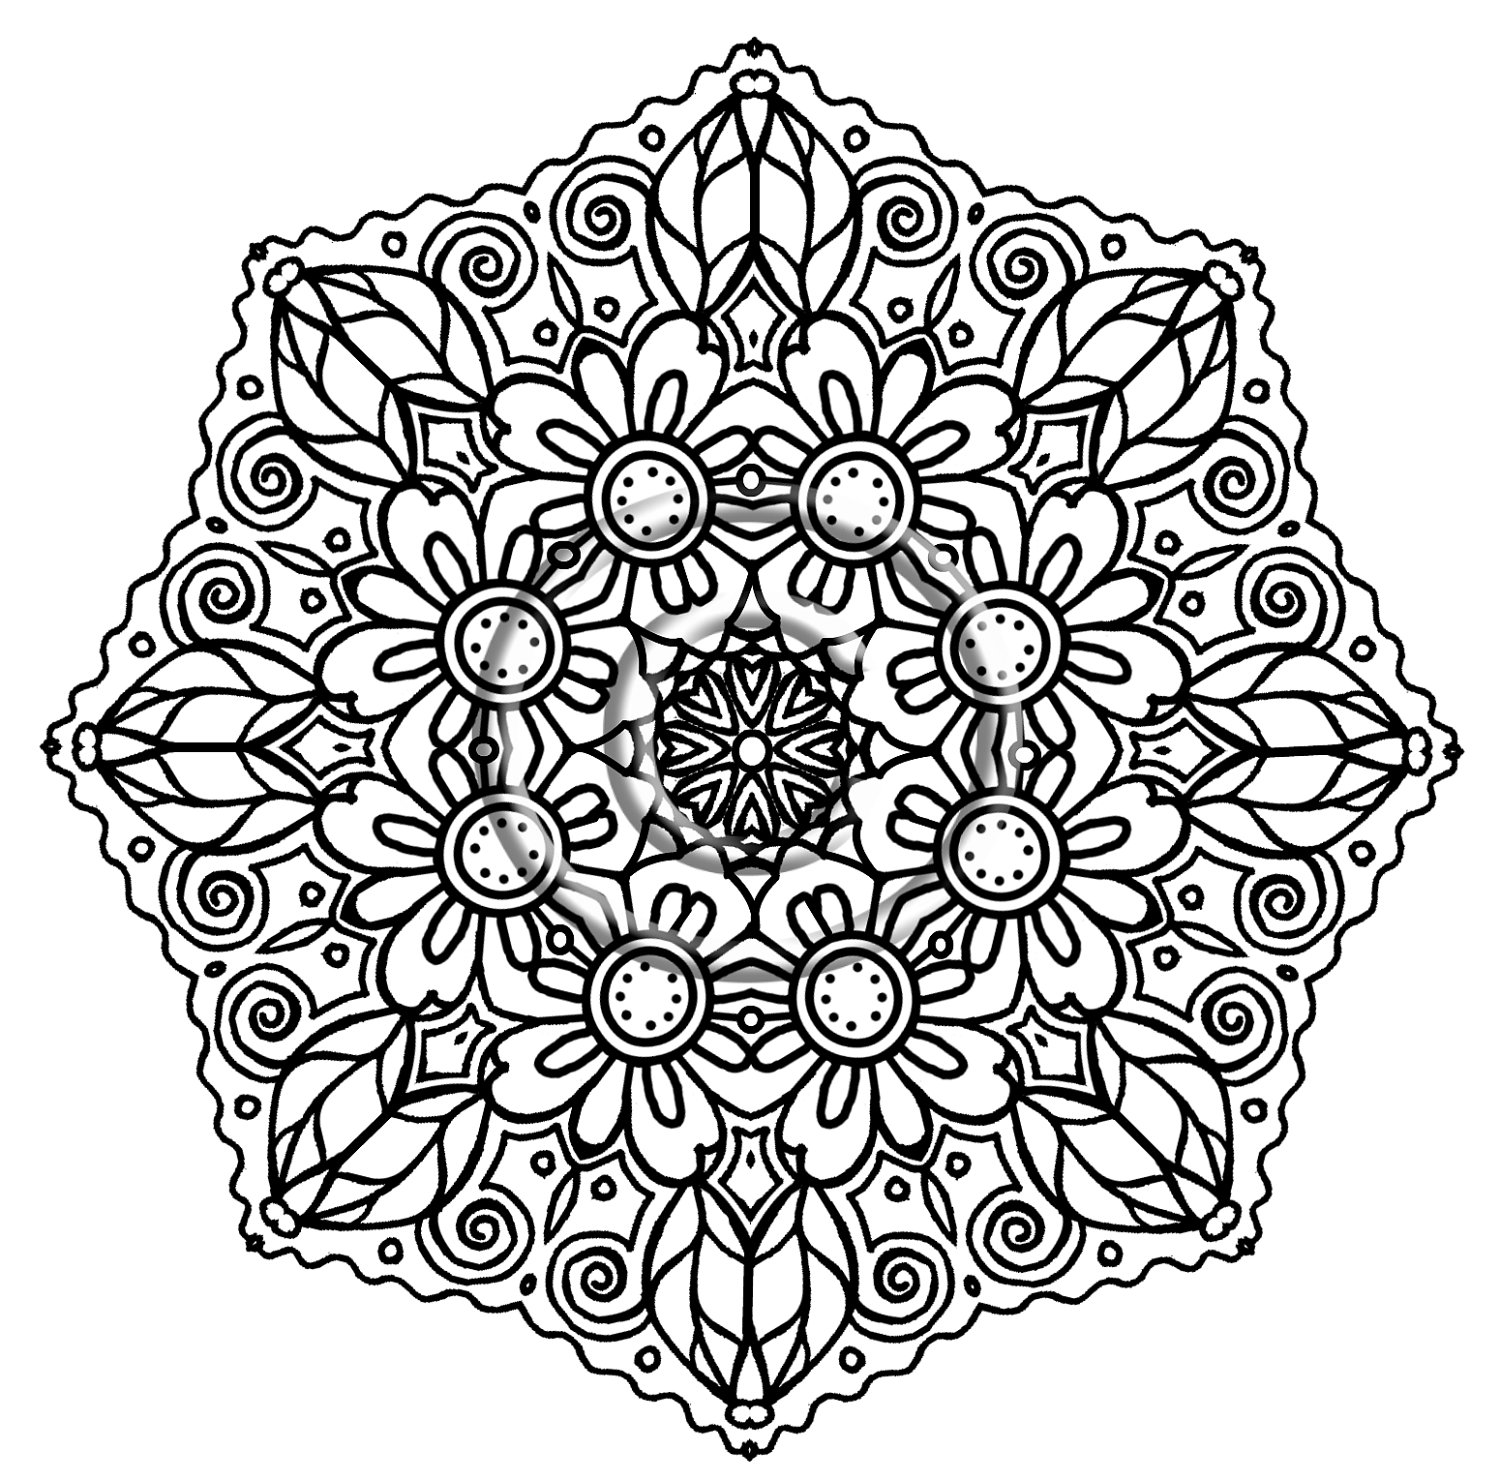 coloring pages of a flower detailed flower coloring pages to download and print for free of flower coloring pages a